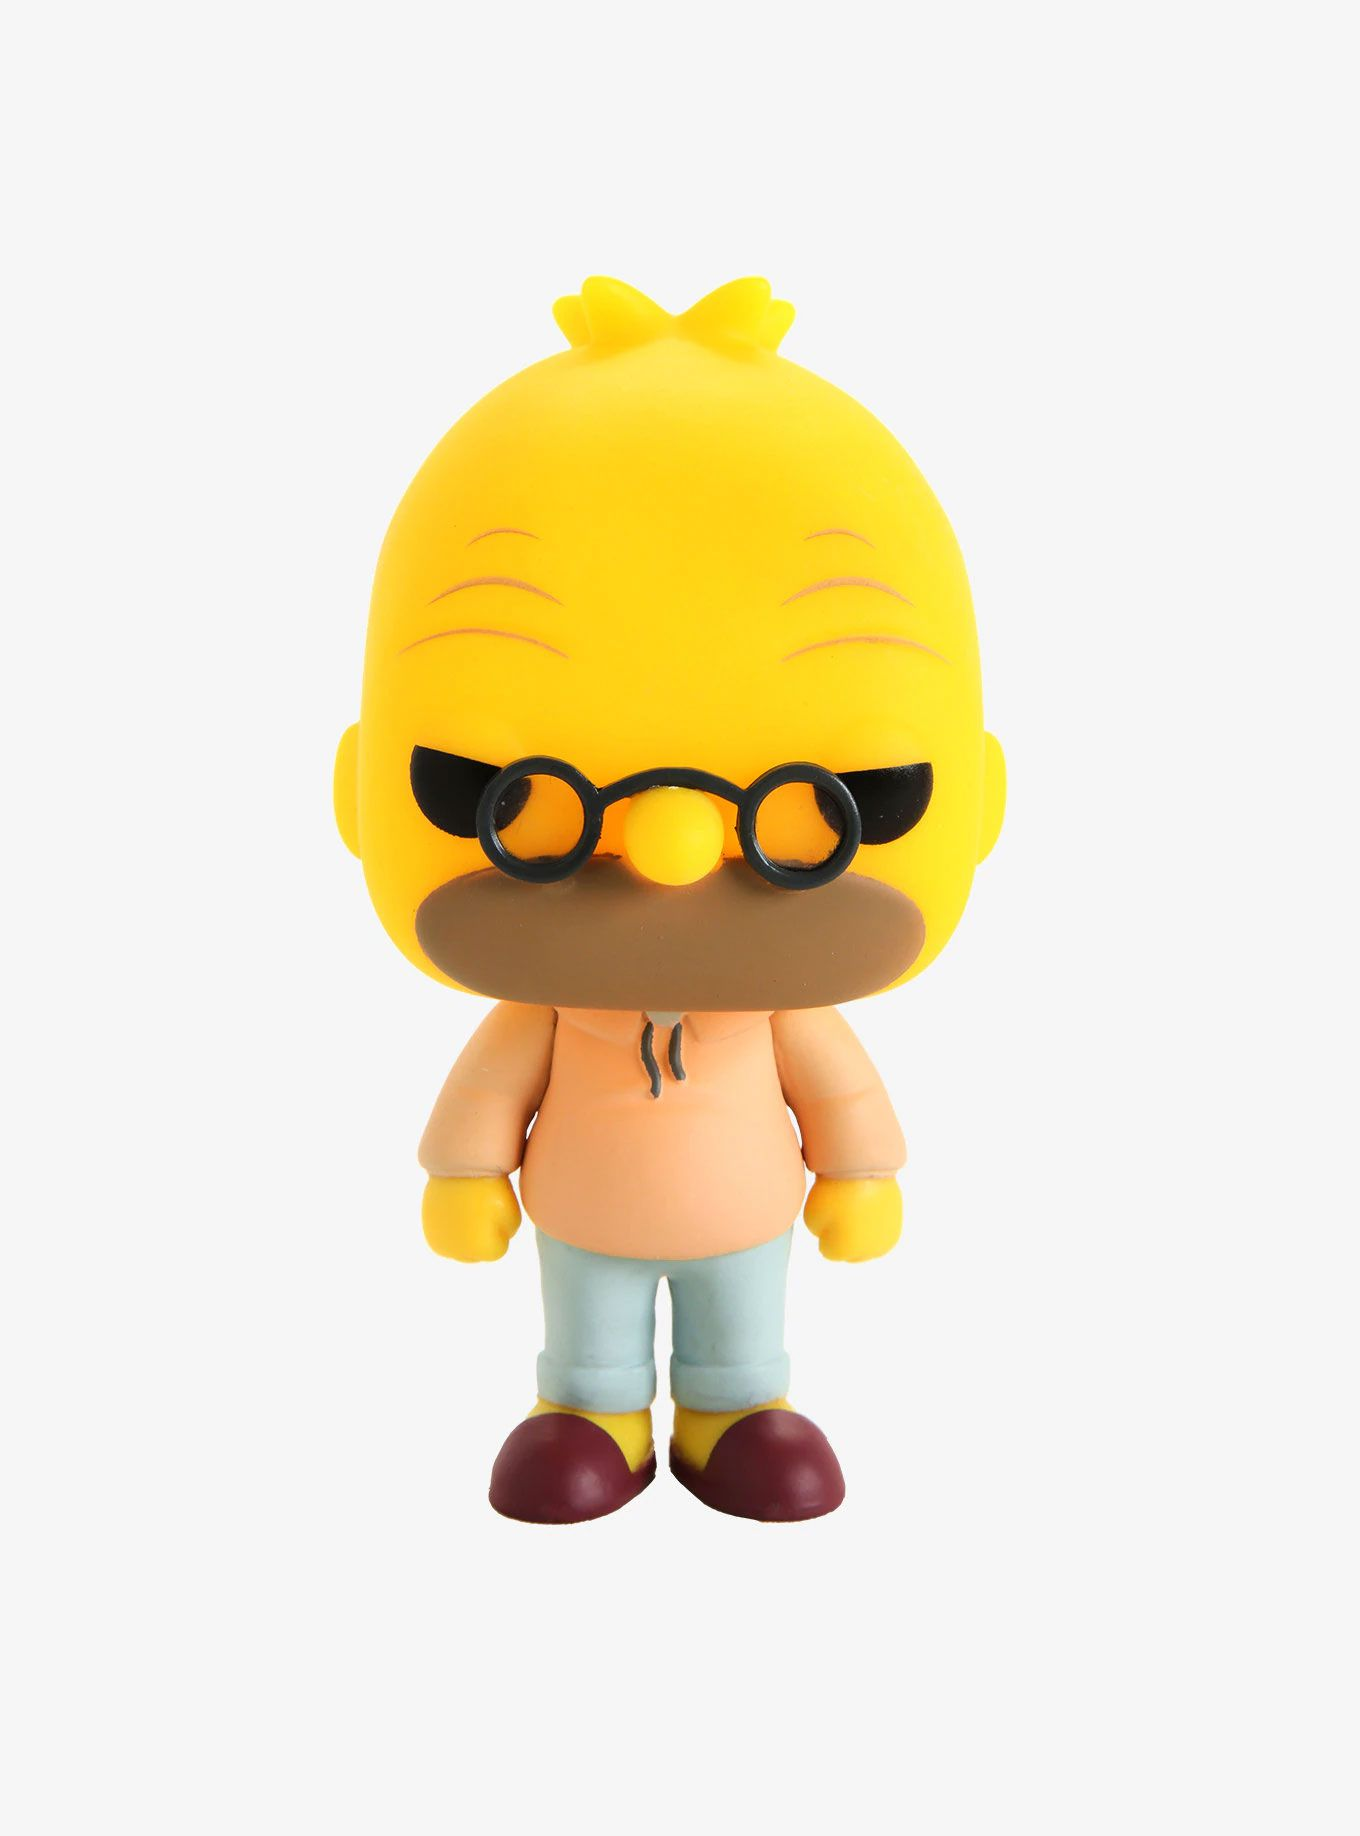 Abe Grampa Simpsons #499 - The Simpsons - Funko Pop! Television